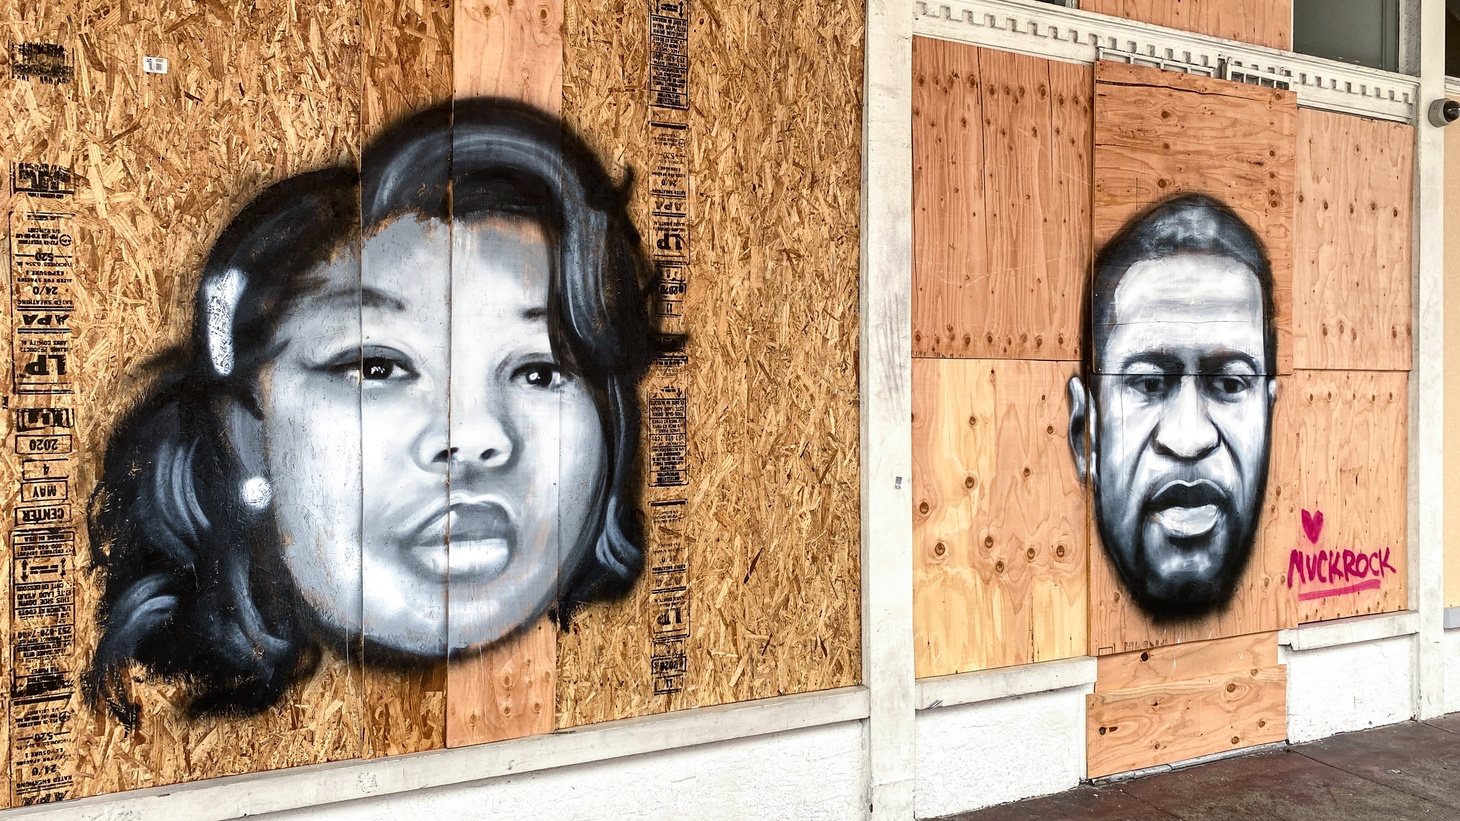 An artist has painted the faces of Breonna Taylor and George Floyd on a boarded-up business in Venice, California. June 5, 2020.